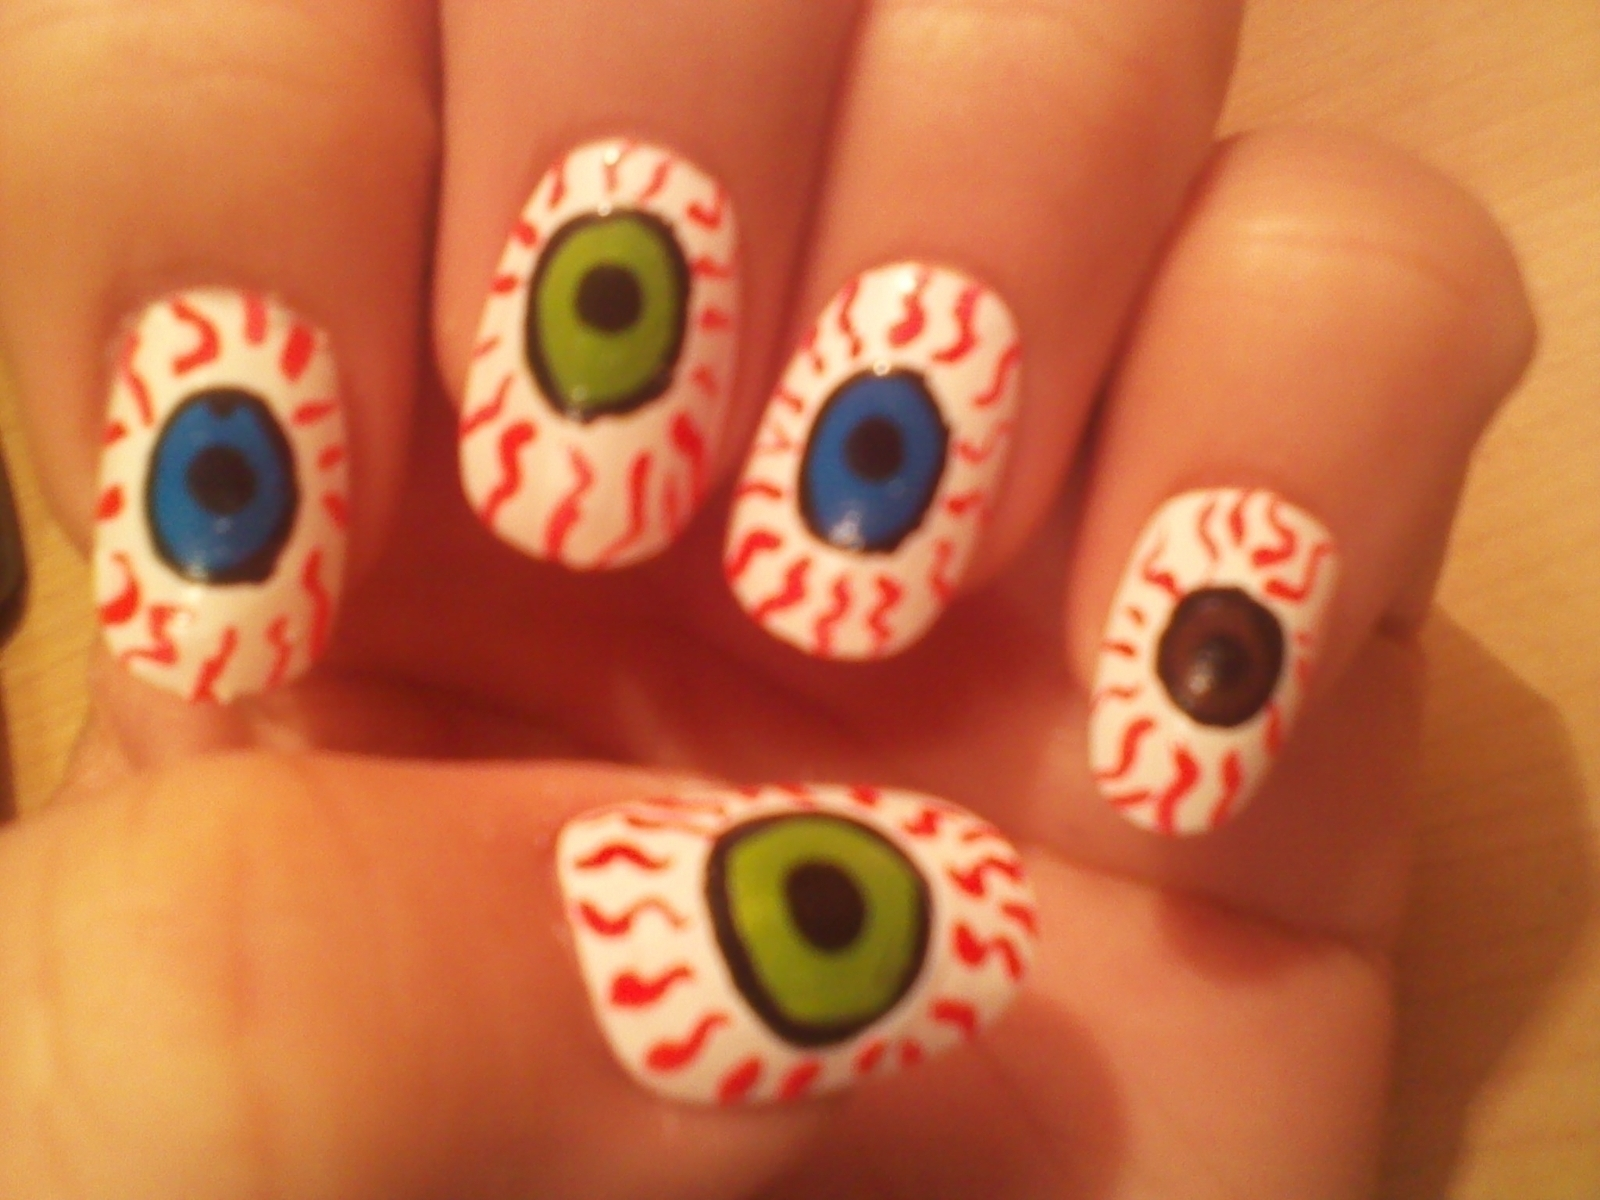 Eyeball Nail Art · How To Paint A Themed Nail Manicure ...